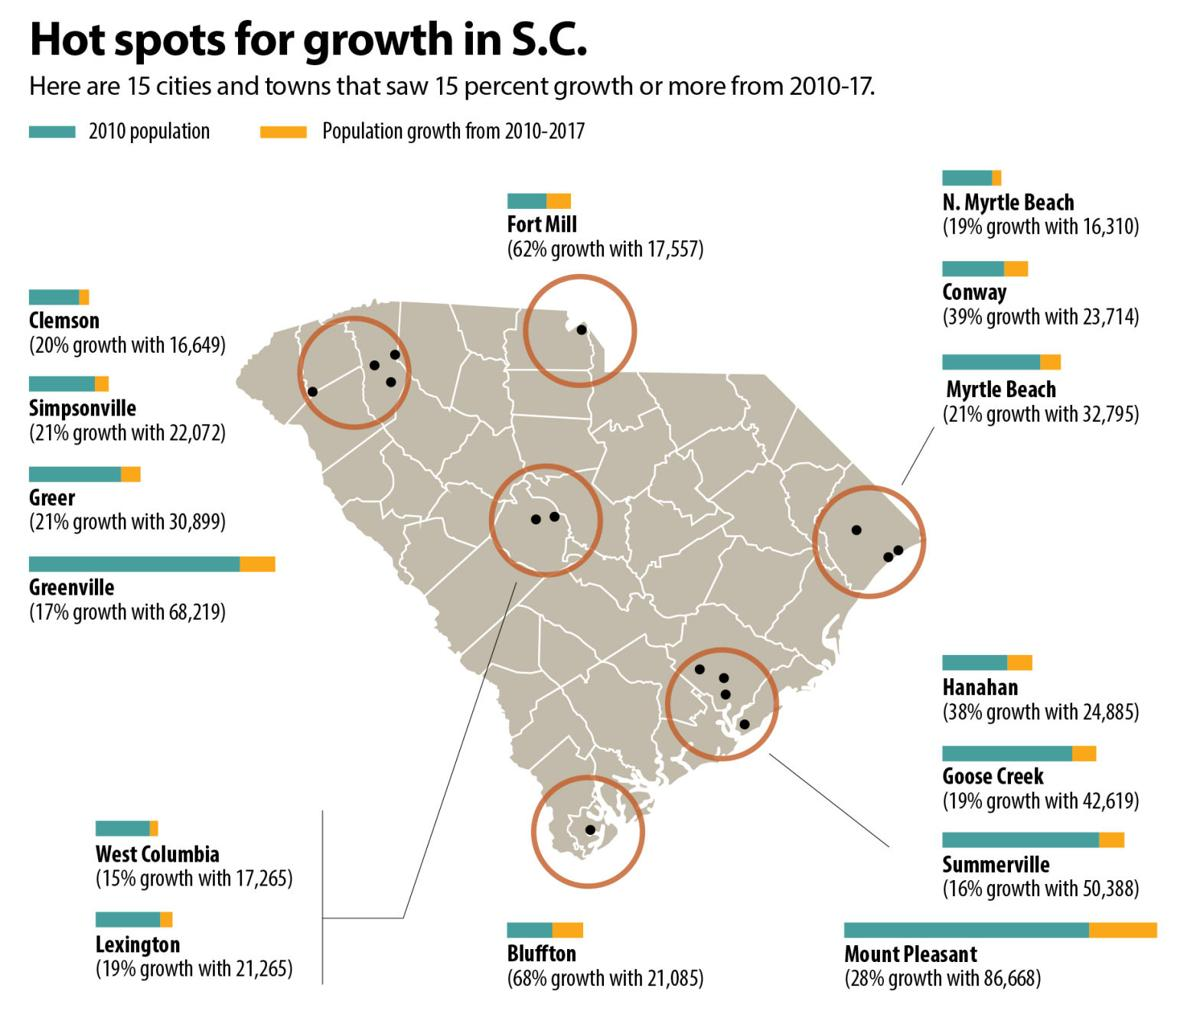 Charleston area, Upstate cities see explosive growth, while